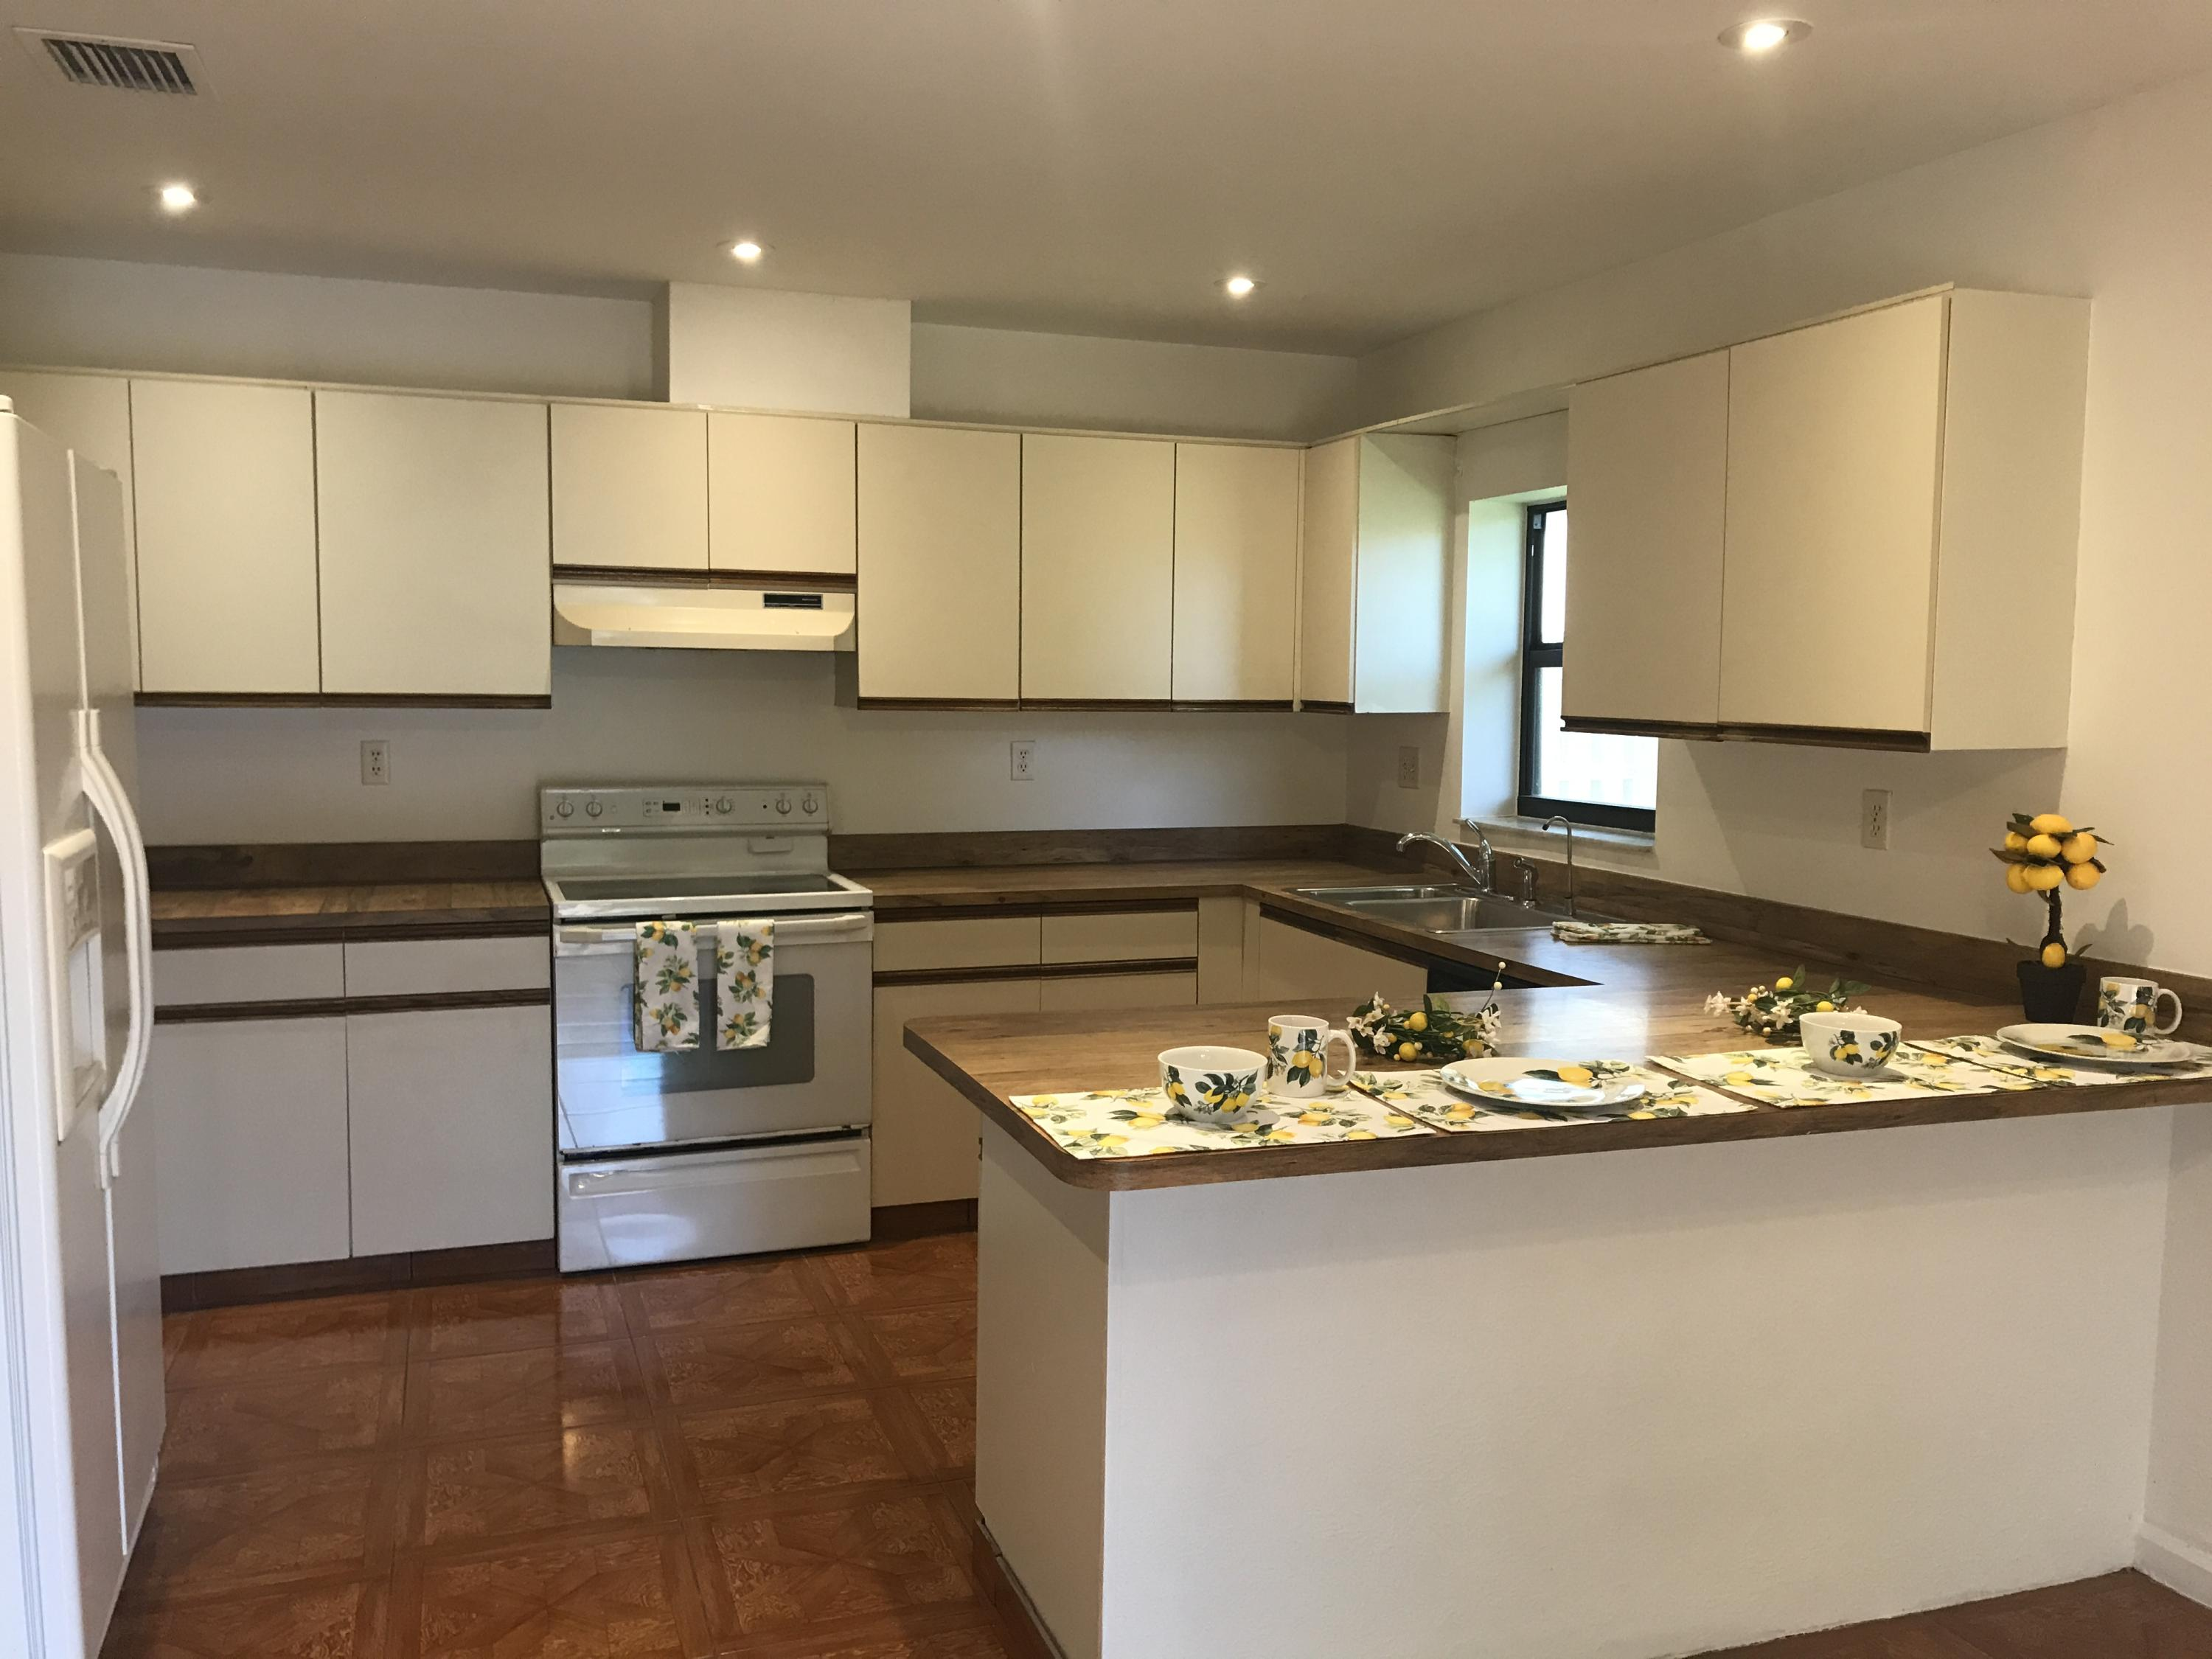 2175 14th Street, Delray Beach, Florida 33445, 2 Bedrooms Bedrooms, ,2 BathroomsBathrooms,Residential,For Sale,14th,RX-10581796